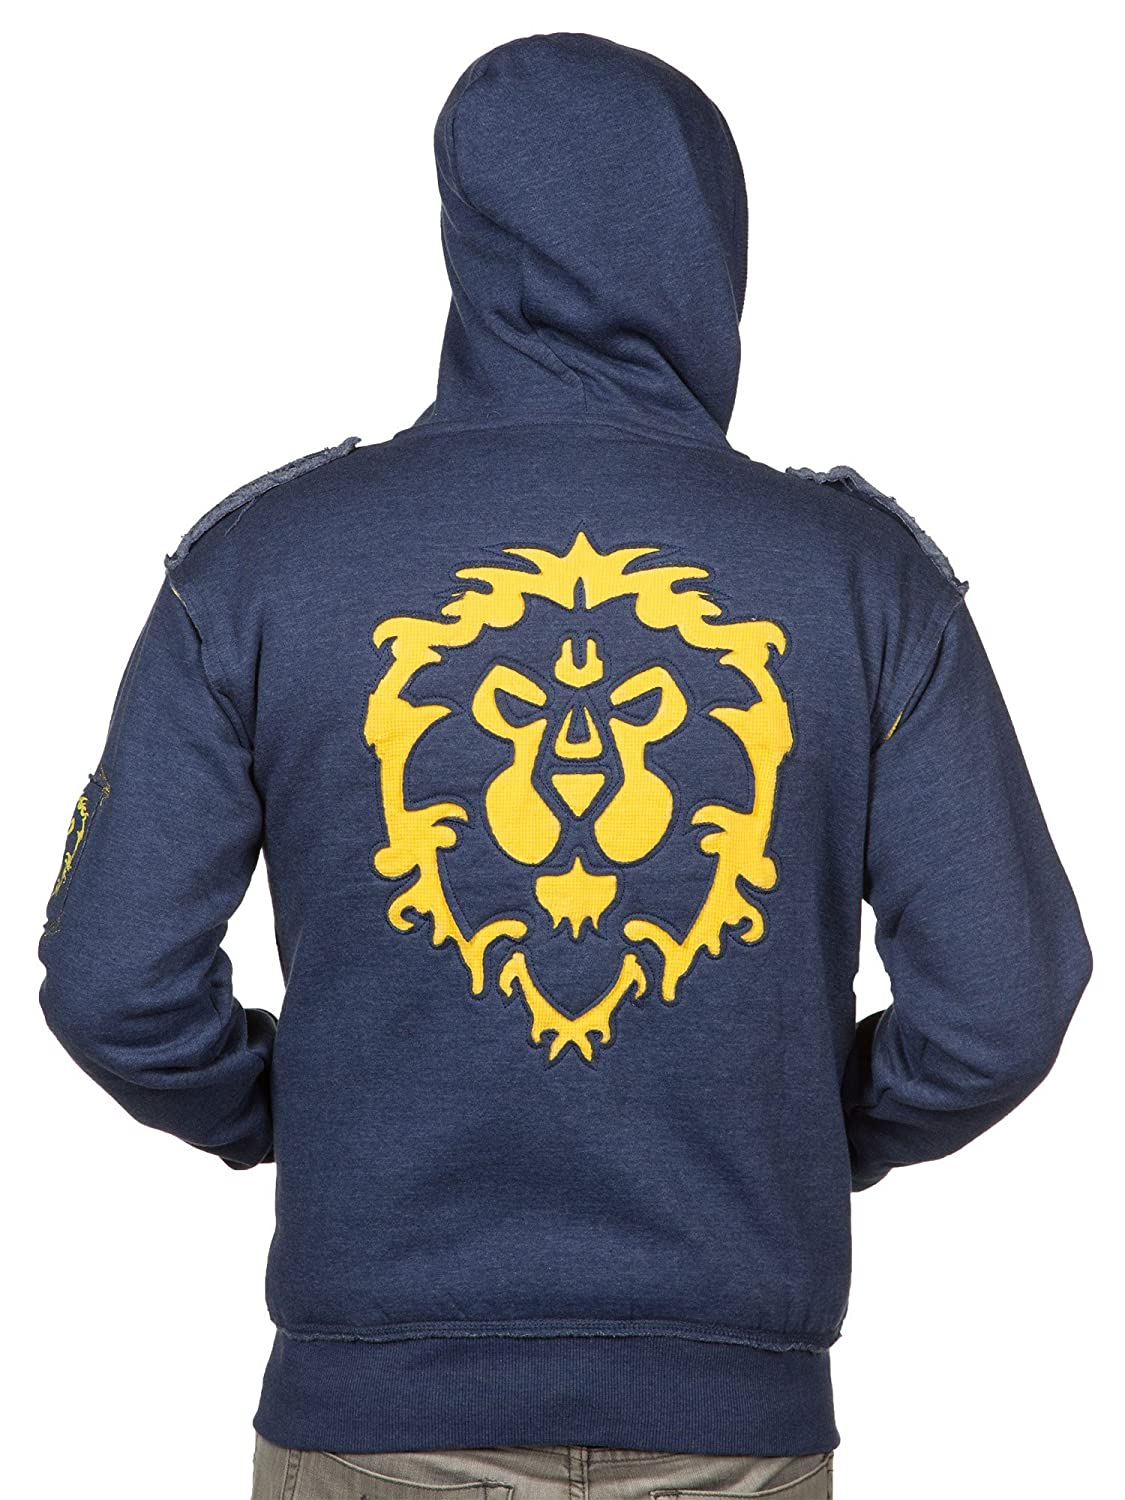 JINX World of Warcraft Men's Champion of The Alliance Premium Zip-Up Hoodie BLWW-05577PH-ND